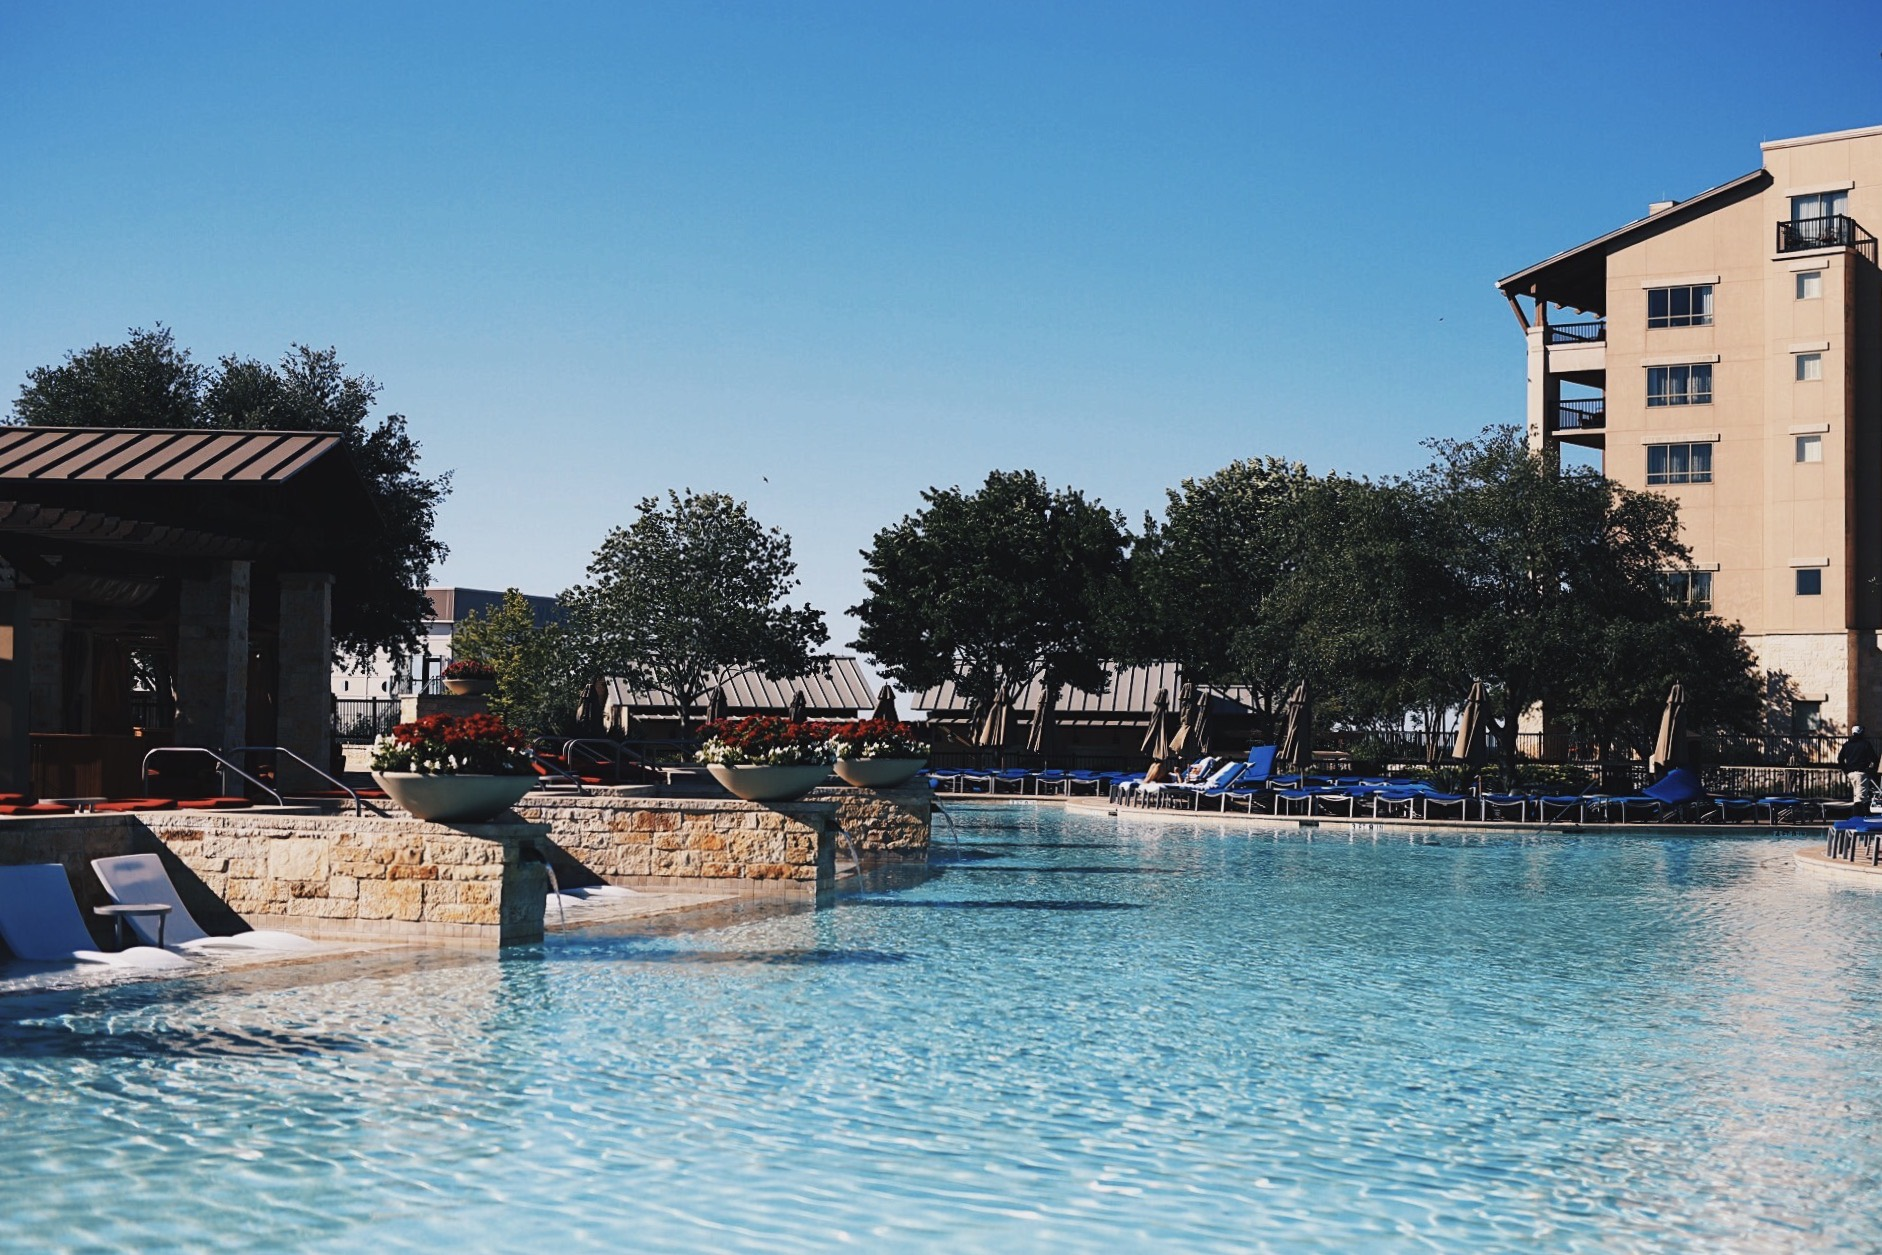 DTKAustin shares her latest stay at the JW Marriott San Antonio Hill Country Resort & Spa in Texas. Gorgeous scenery including a golf course and lazy river, this hotel isn't one to miss. Click for more information and photos!